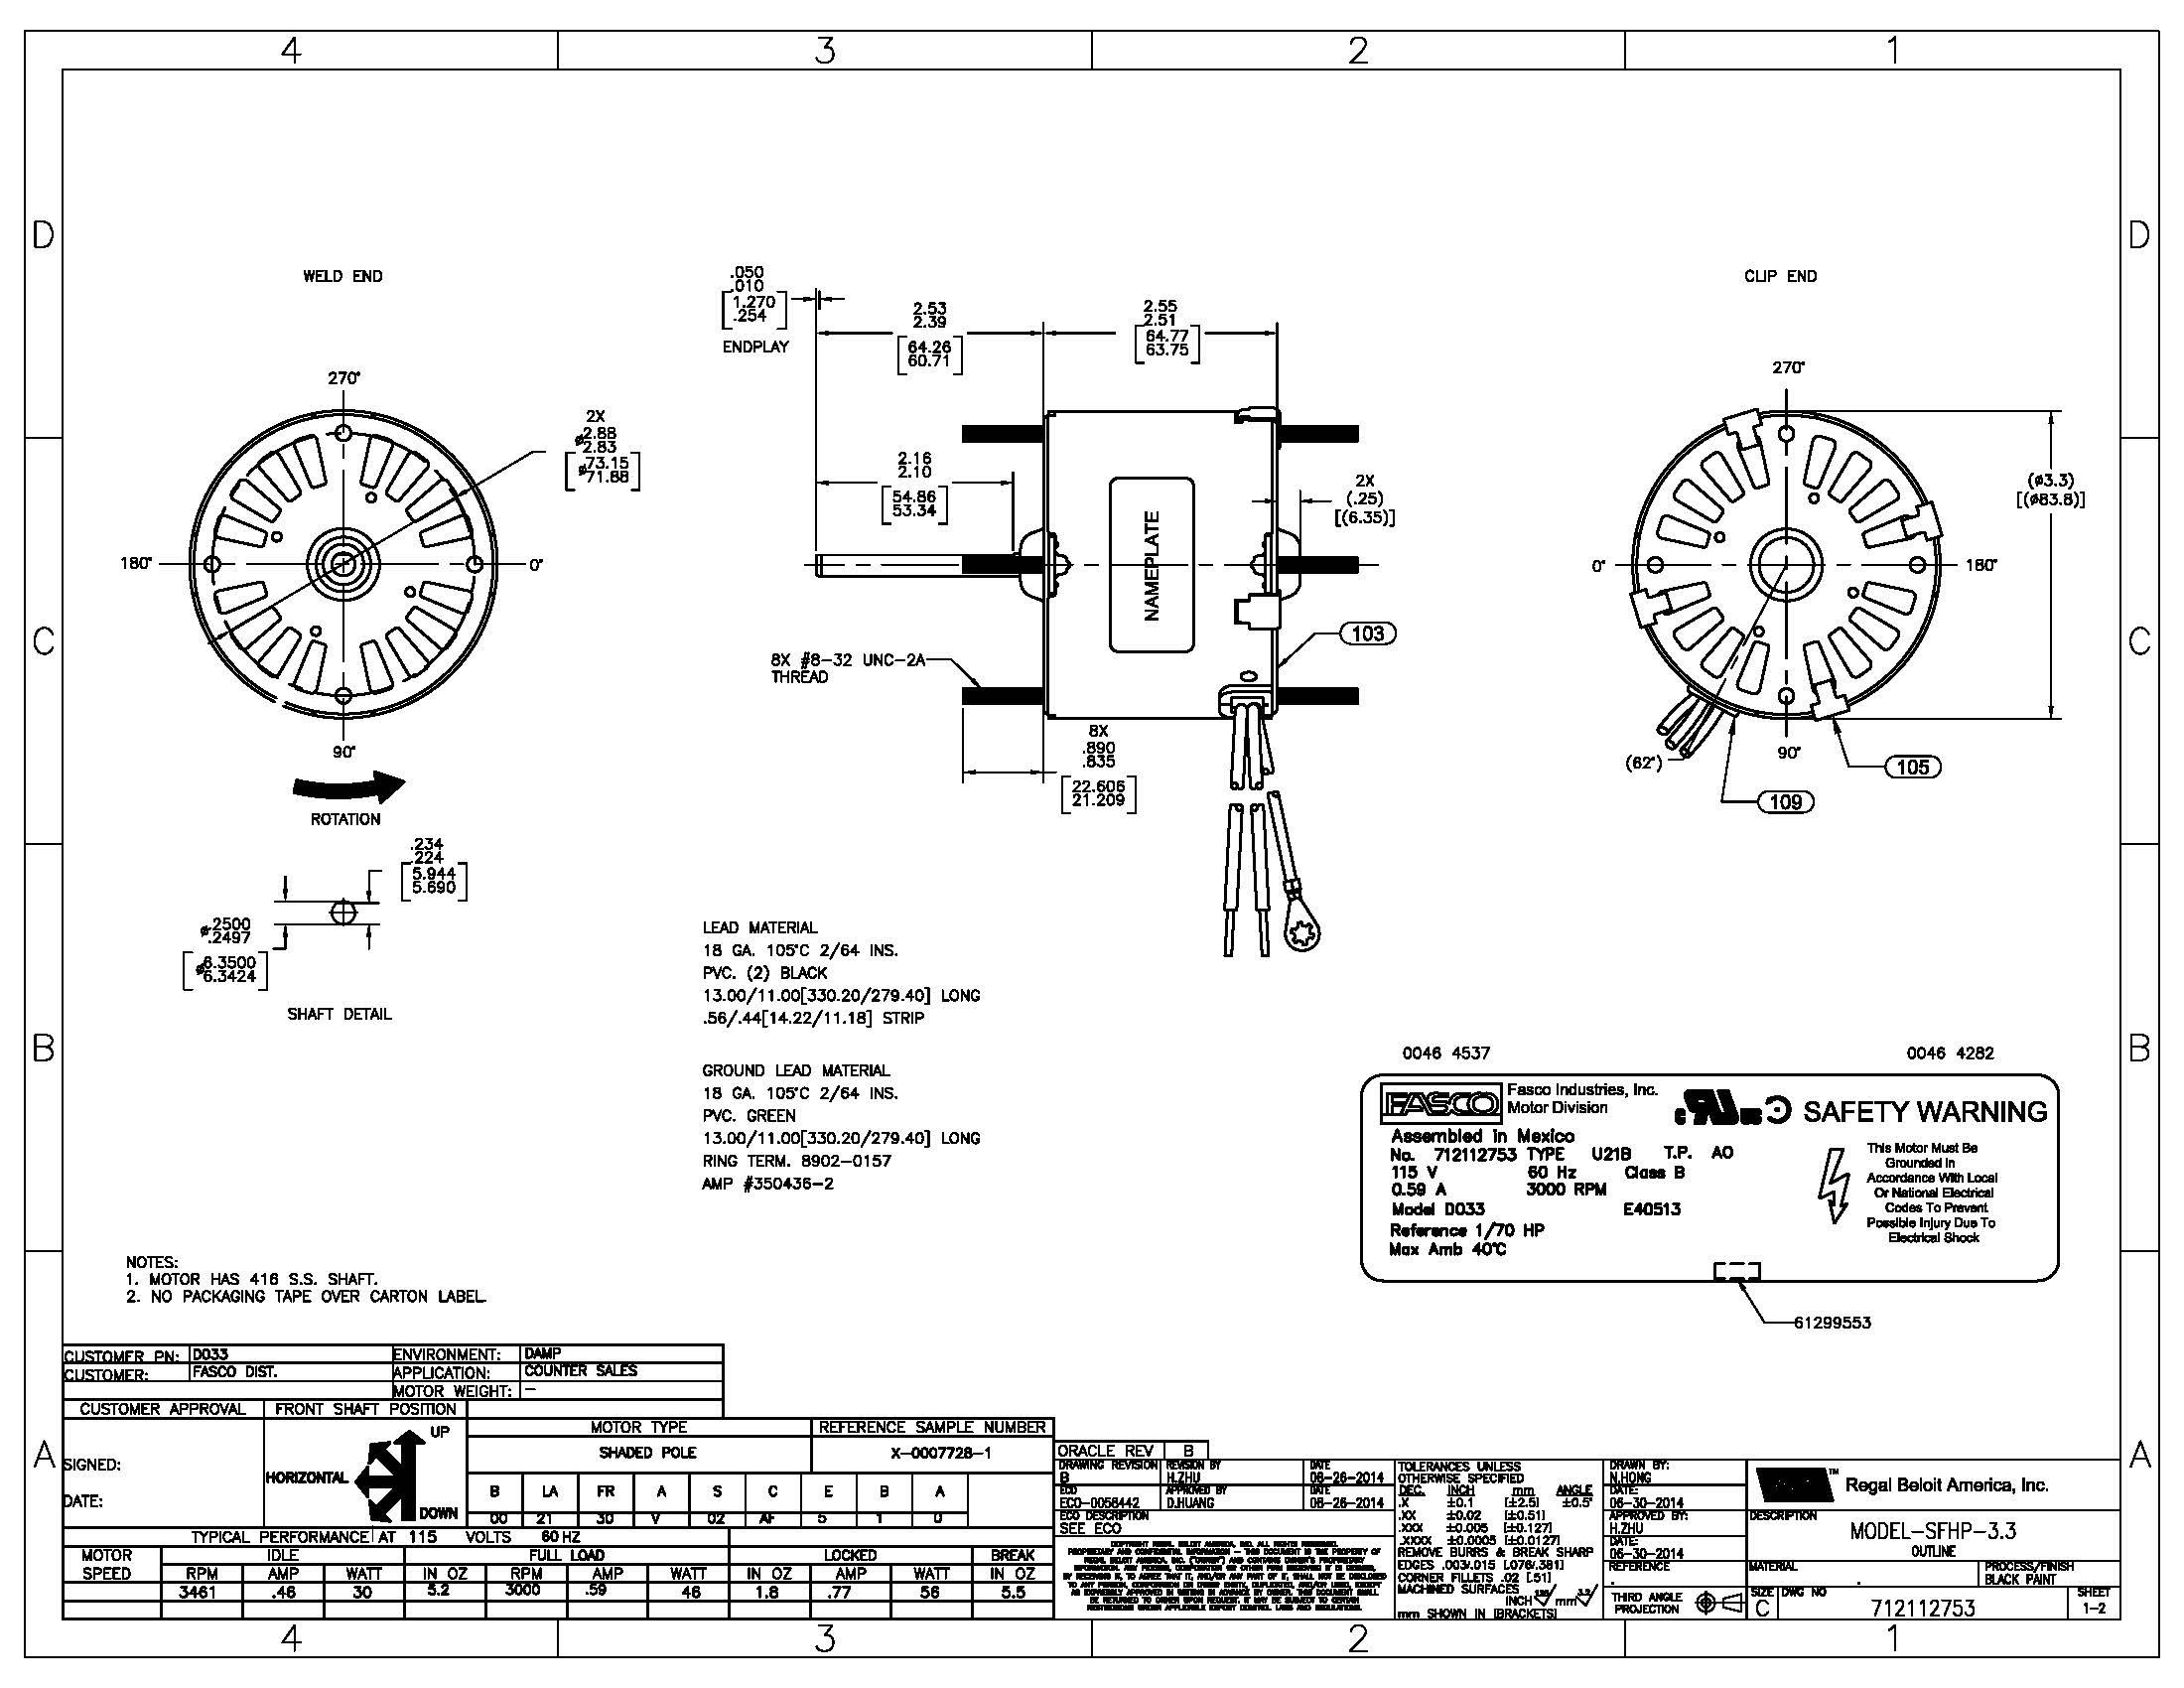 smith and jones electric motors wiring diagram download. Black Bedroom Furniture Sets. Home Design Ideas